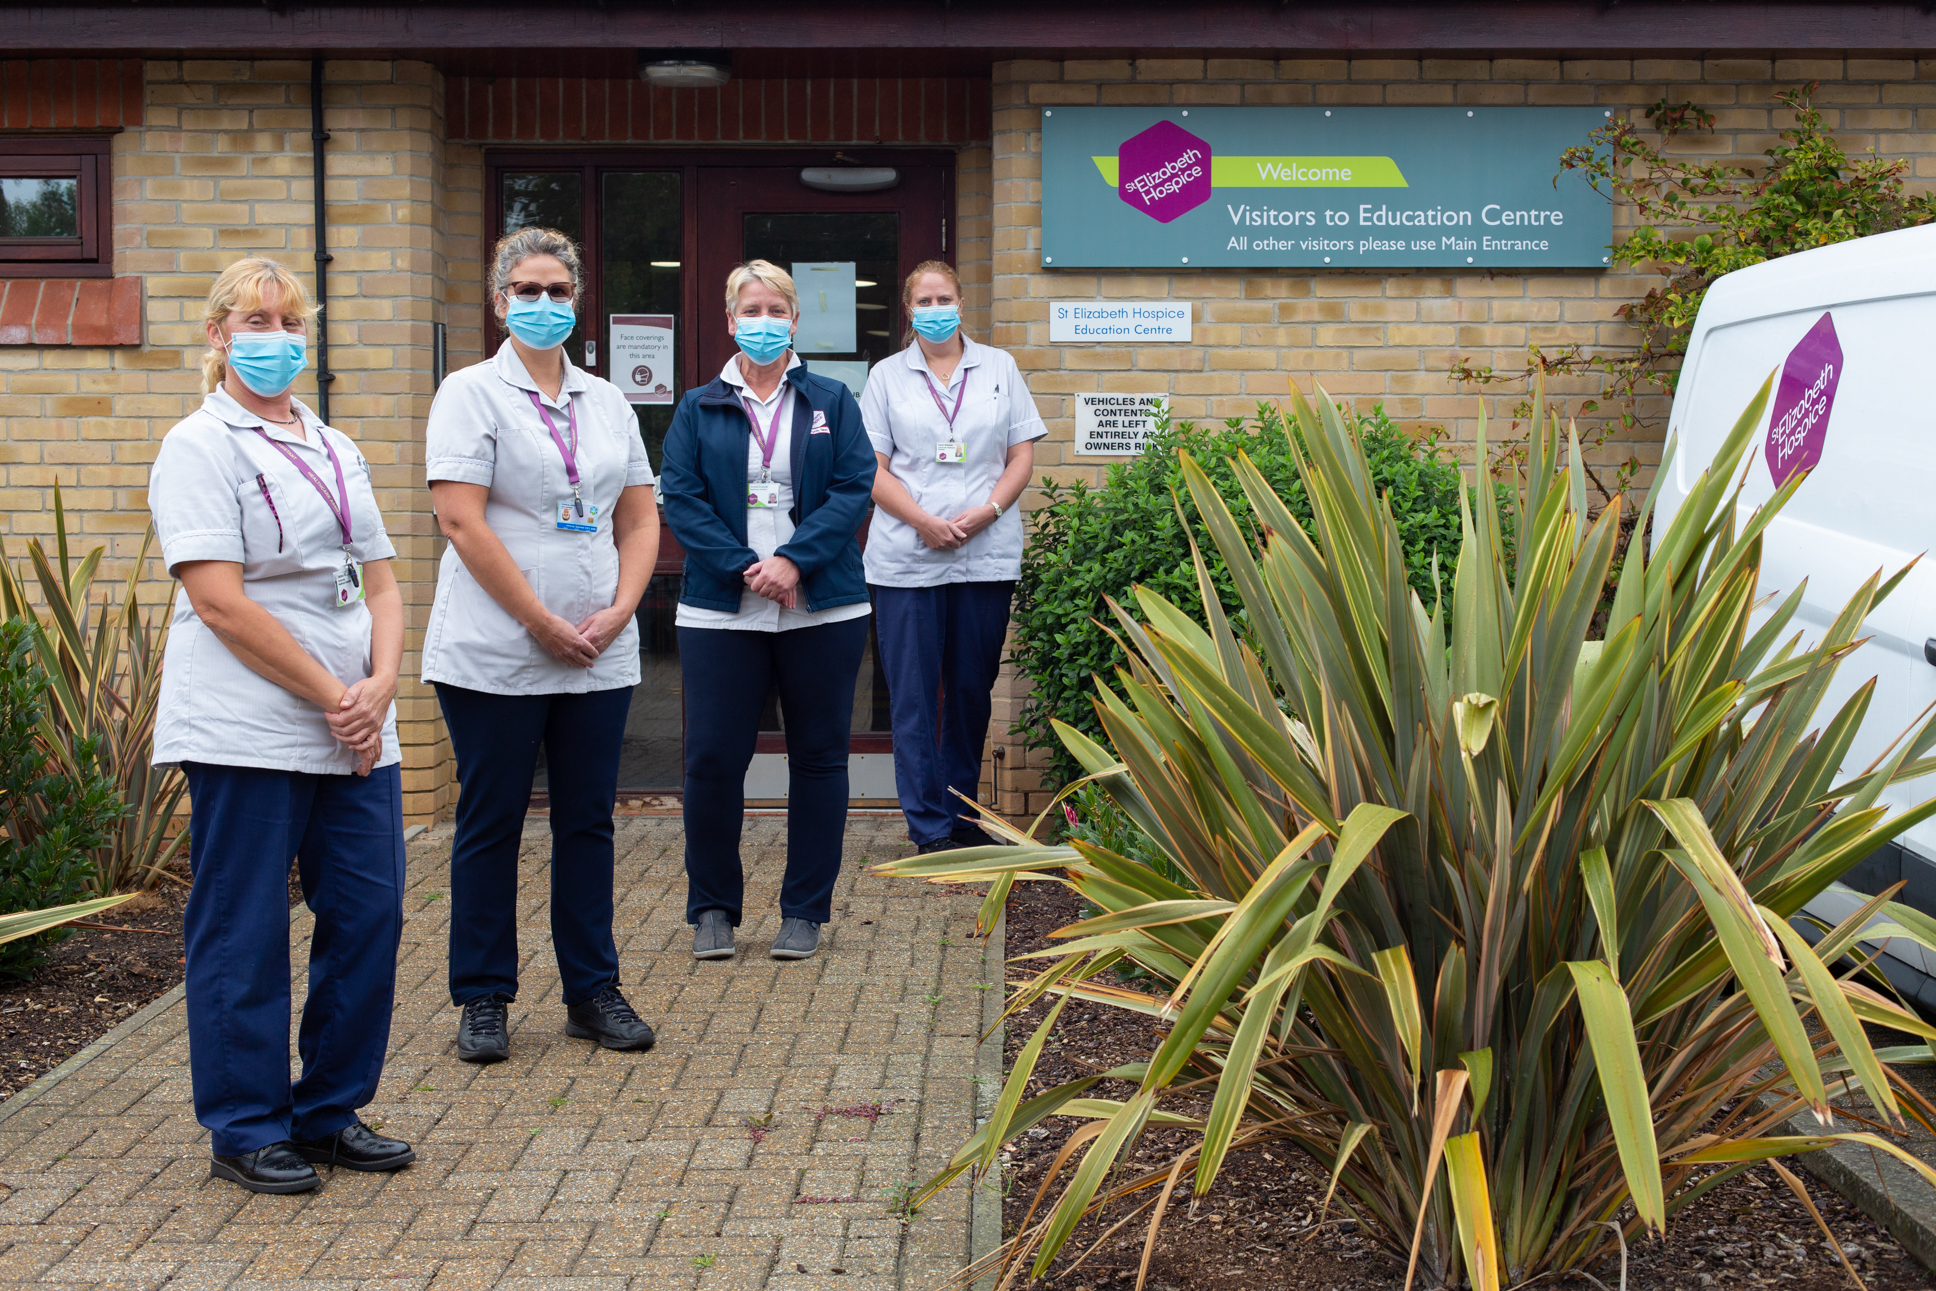 Health Care Assistants outside the Education Centre which has been transformed into The Hub